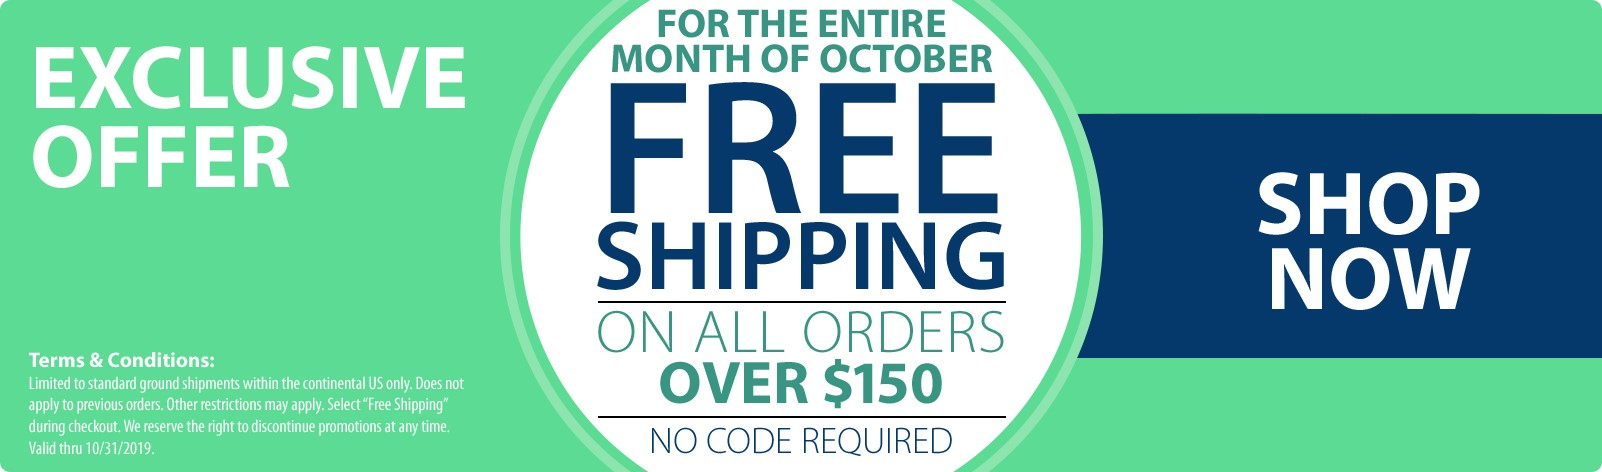 Free Shipping on any order over $150 for the entire month of October! No code required.